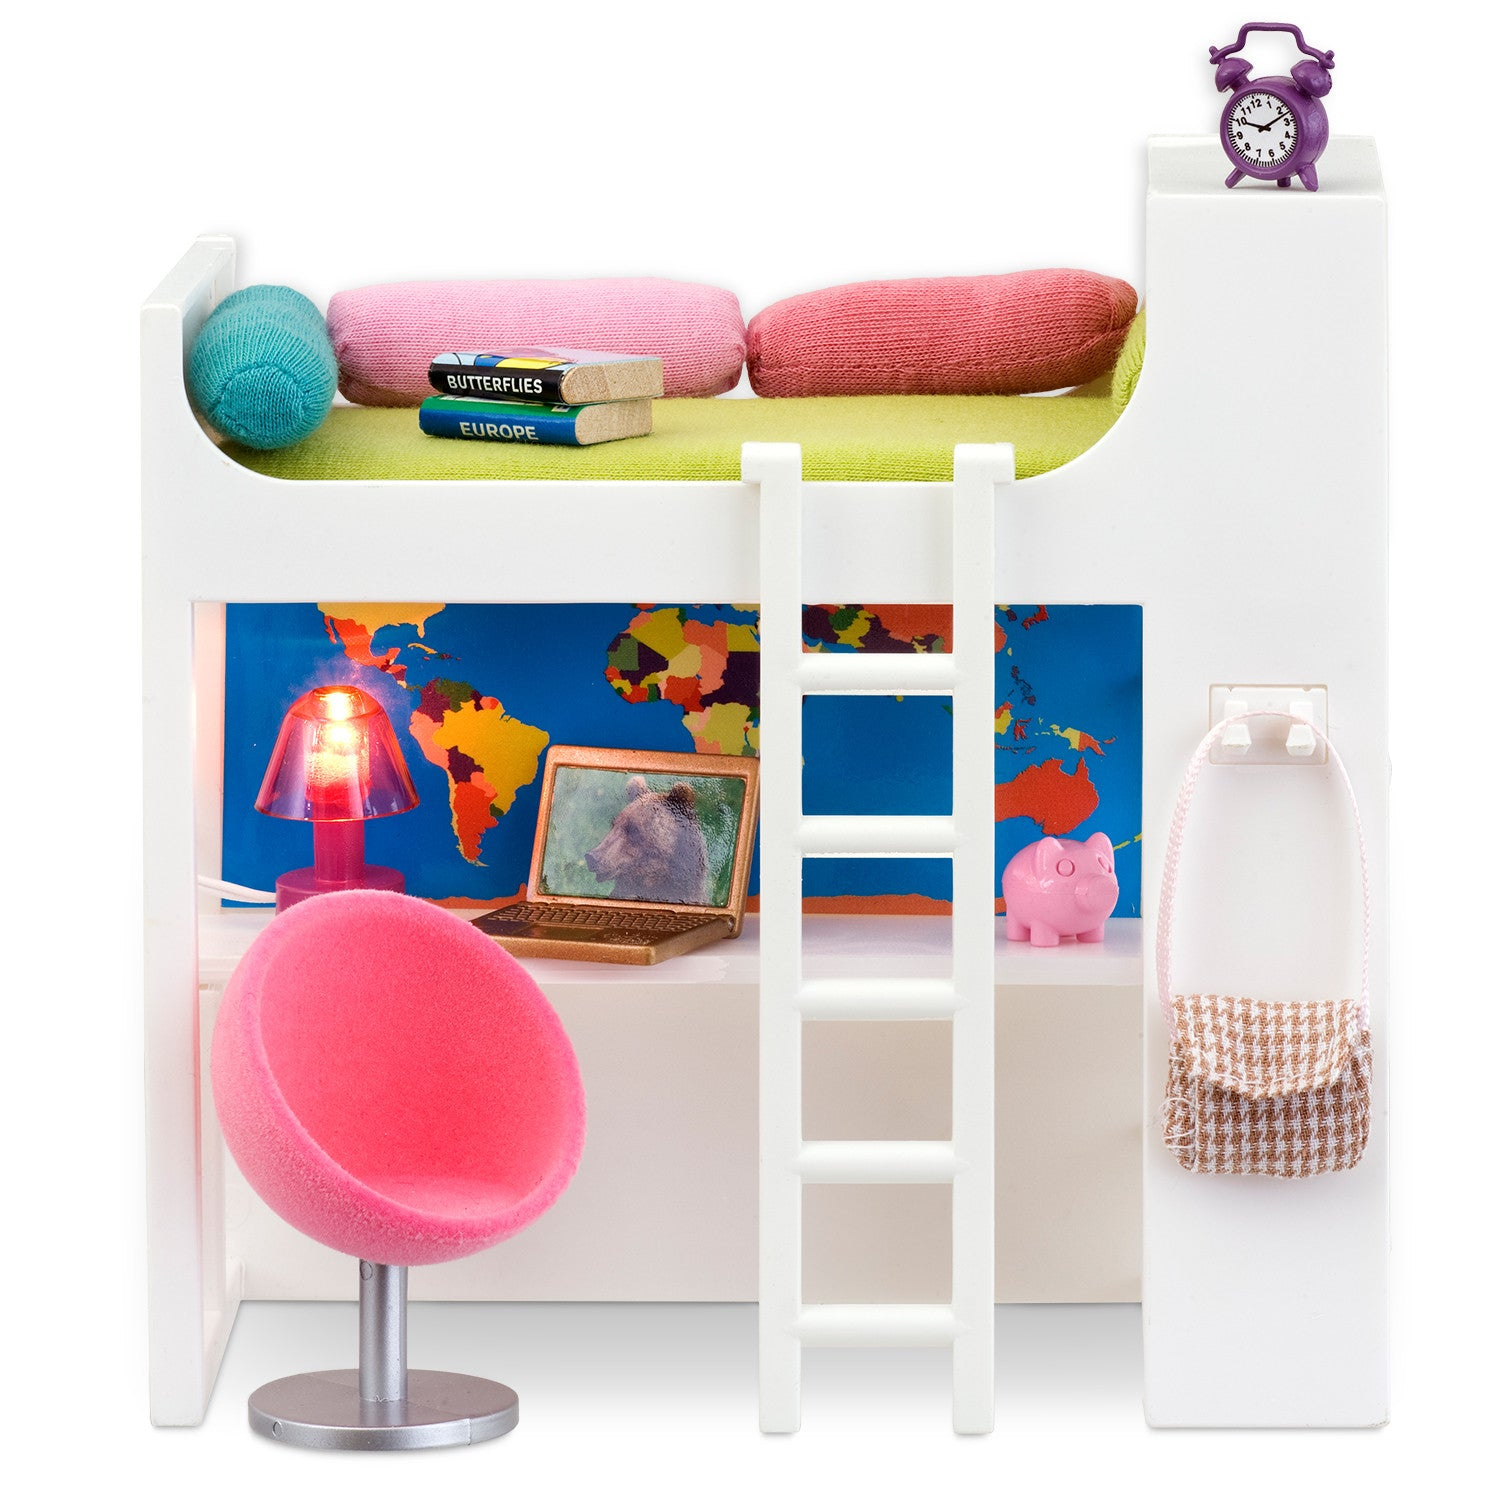 Smaland Dollhouse Loft Bed Set - Little Citizens Boutique  - 1